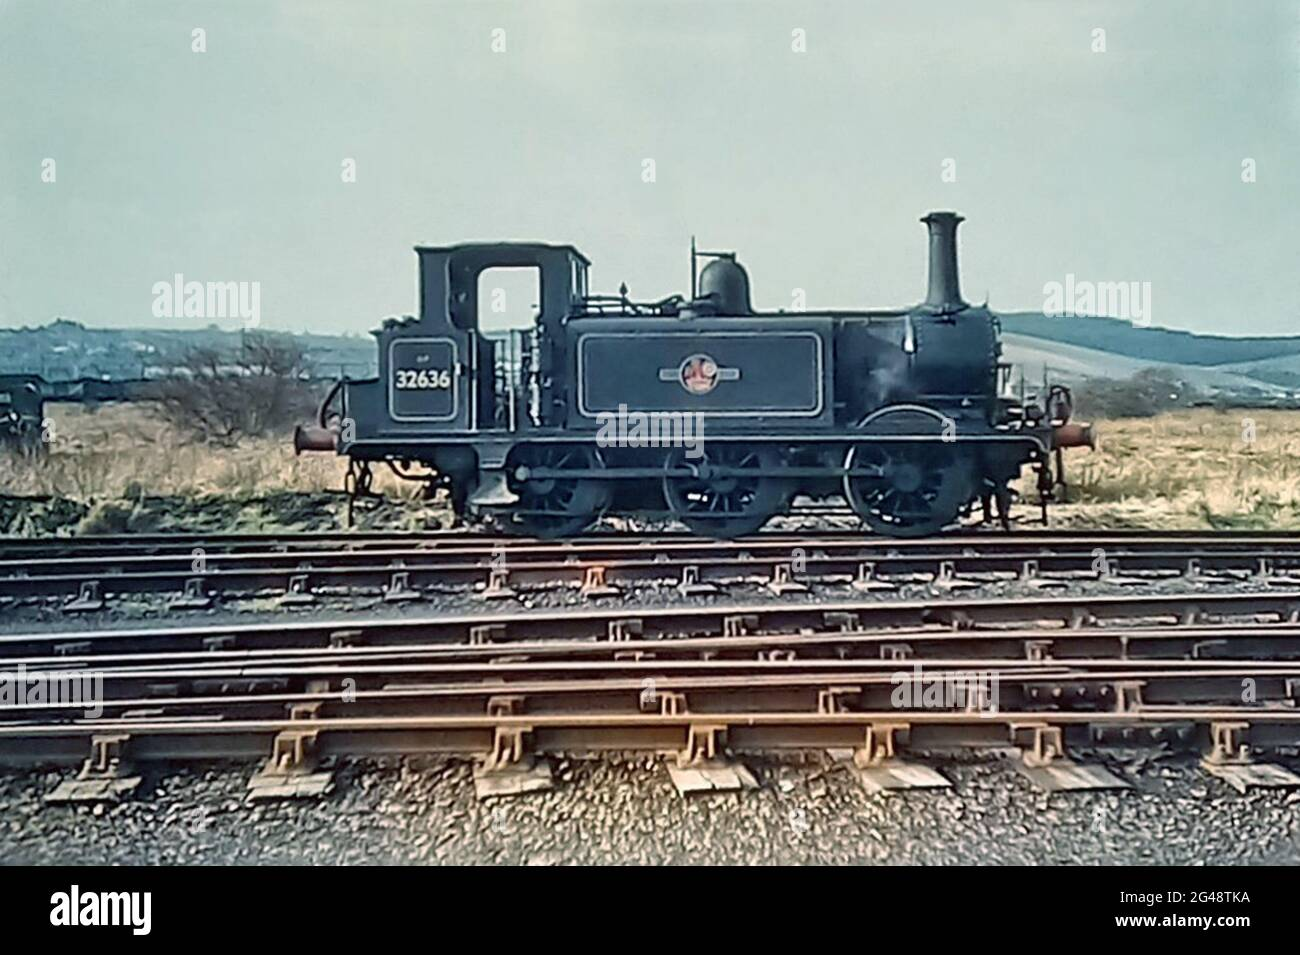 A1X Terrier Class No 32636, Newhaven Goods Yard, Hayling Island, England 4th February 1961 Stock Photo